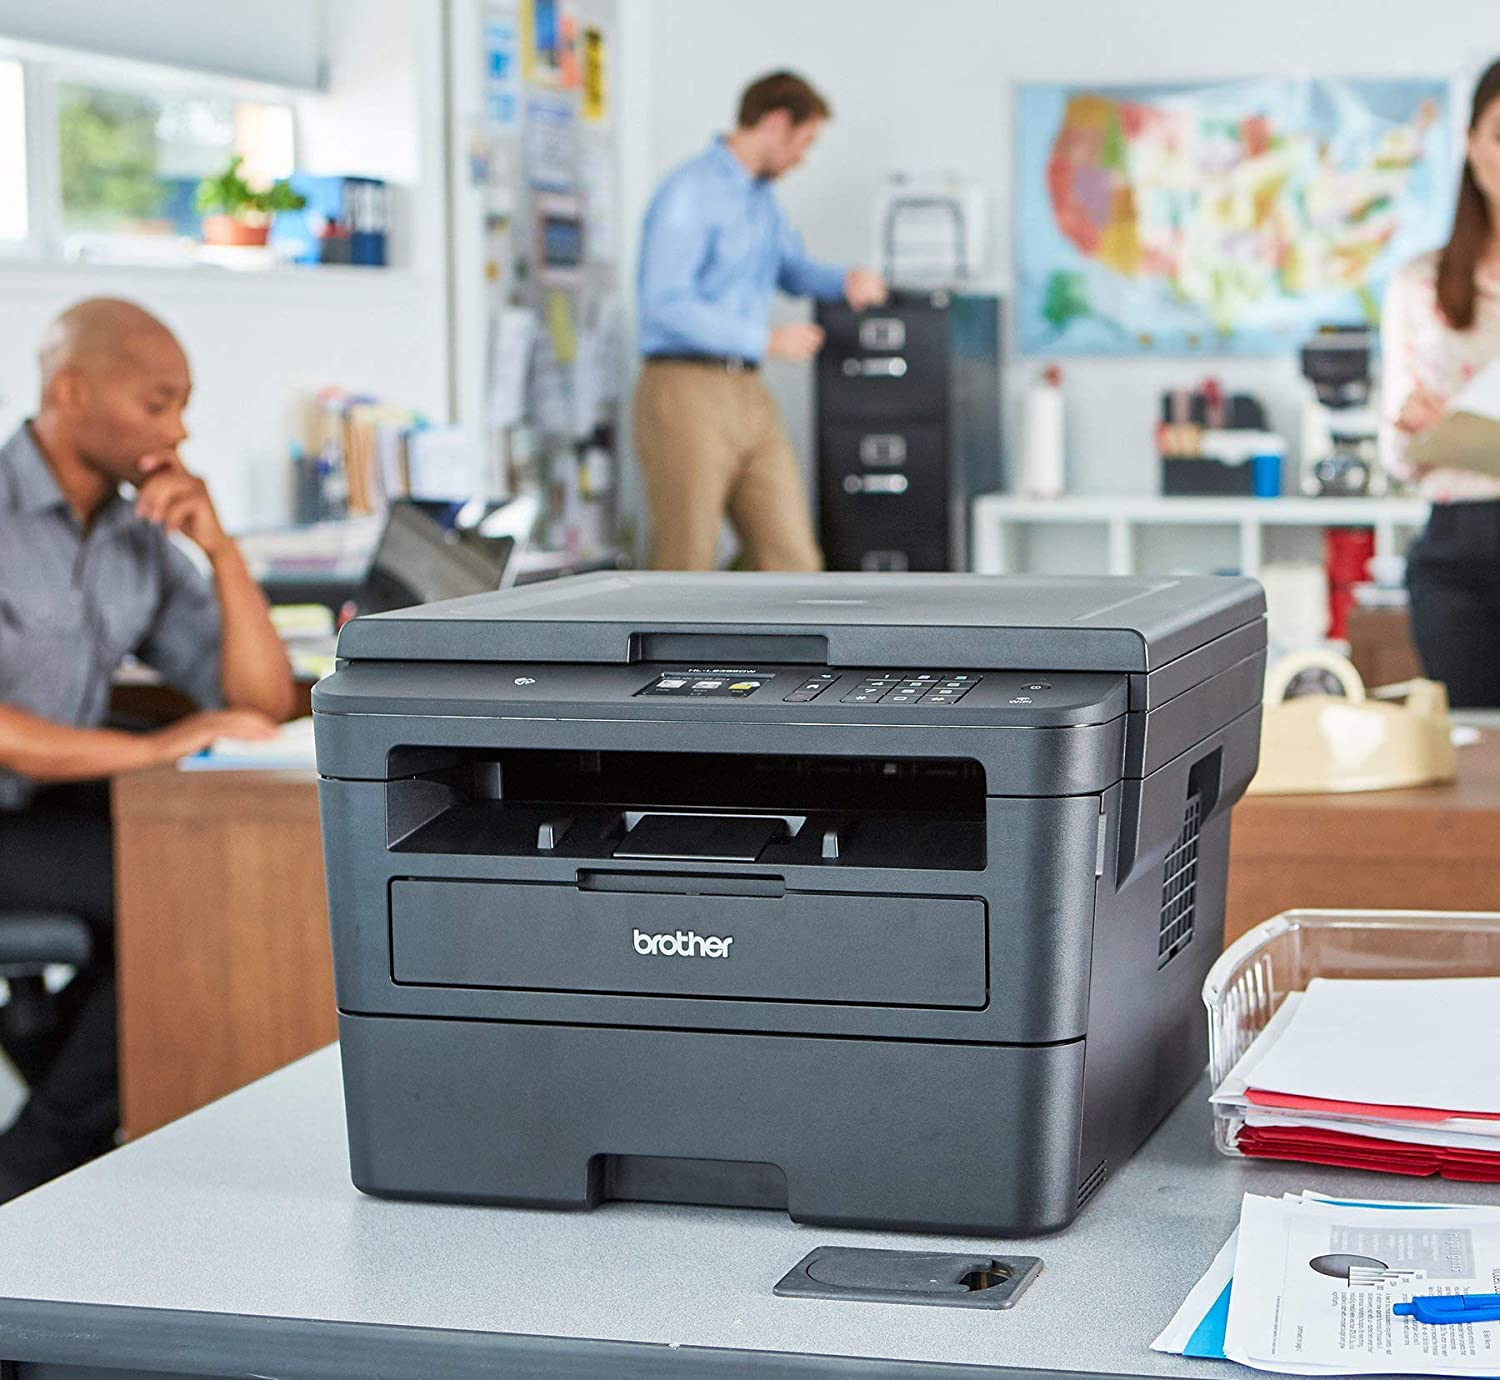 Brother Compact Monochrome Laser Printer, HLL2395DW, Flatbed Copy & Scan, Wireless Printing, NFC, Cloud-Based Printing & Scanning, Amazon Dash Replenishment Enabled (Renewed)